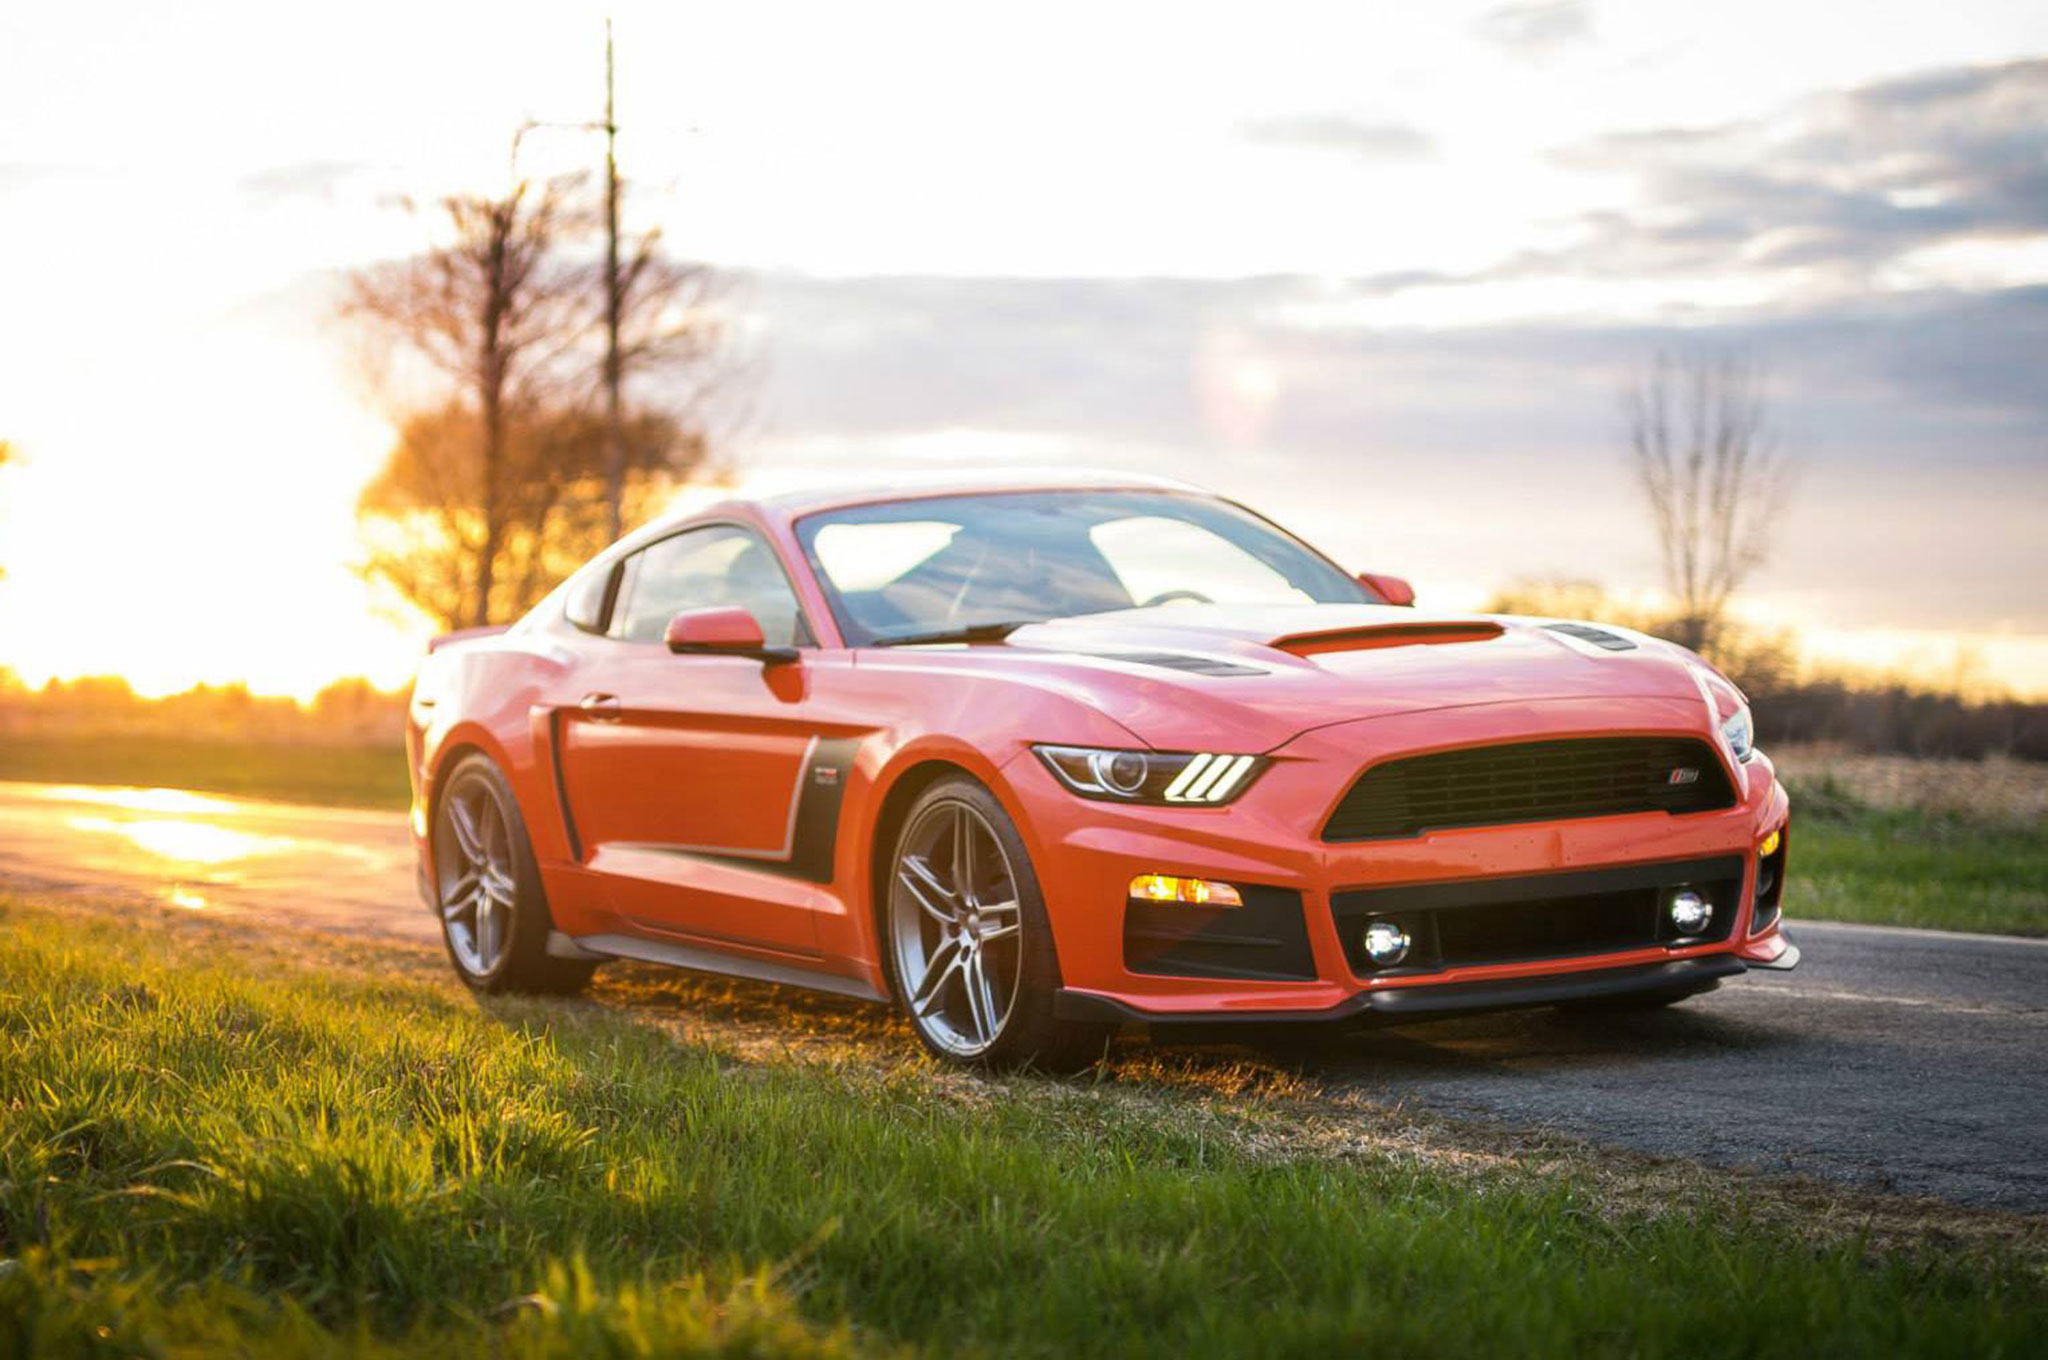 Wild Horse 2015 Roush Stage 3 Mustang Makes 670 Hp Motor Trend